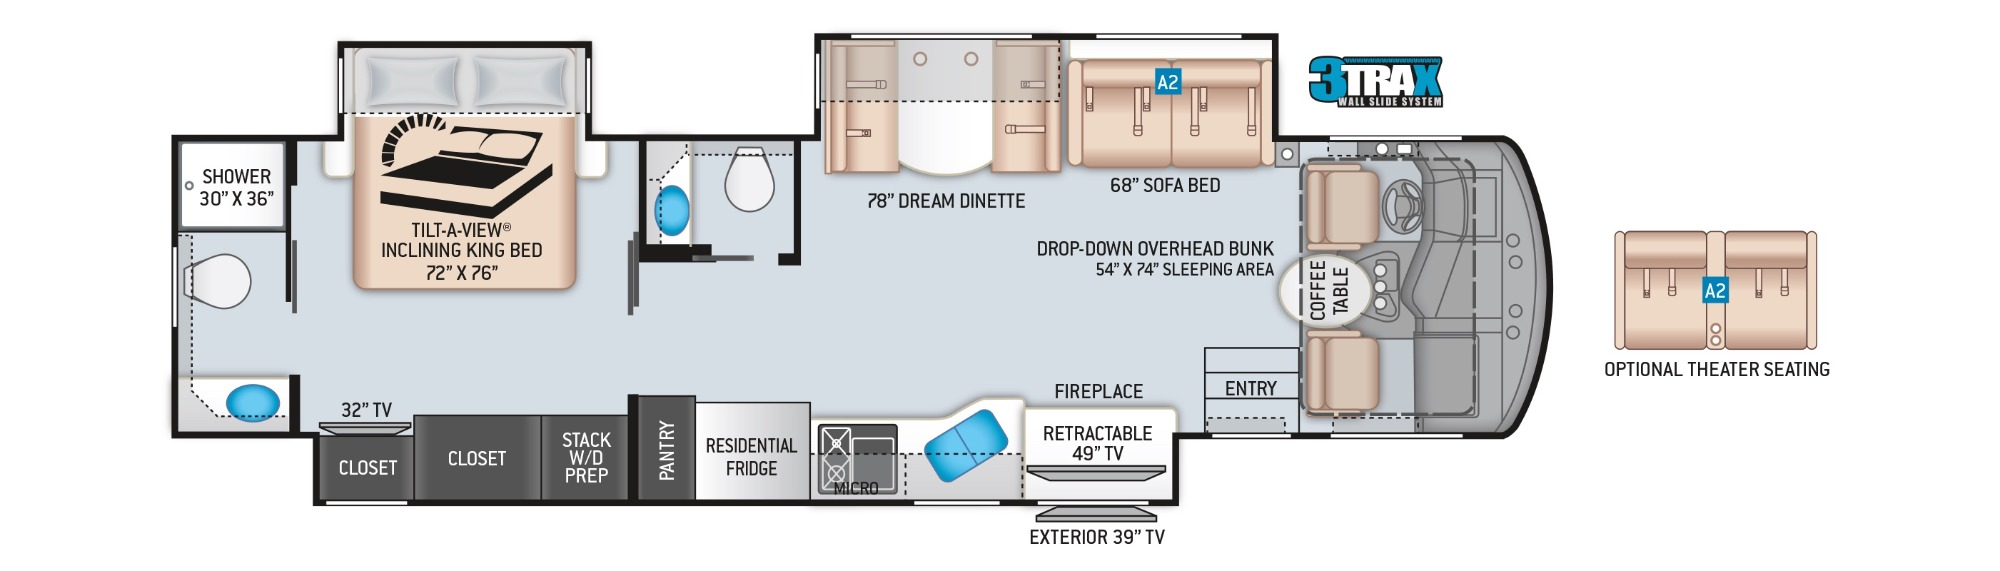 View Floor Plan for 2022 THOR CHALLENGER 37FH